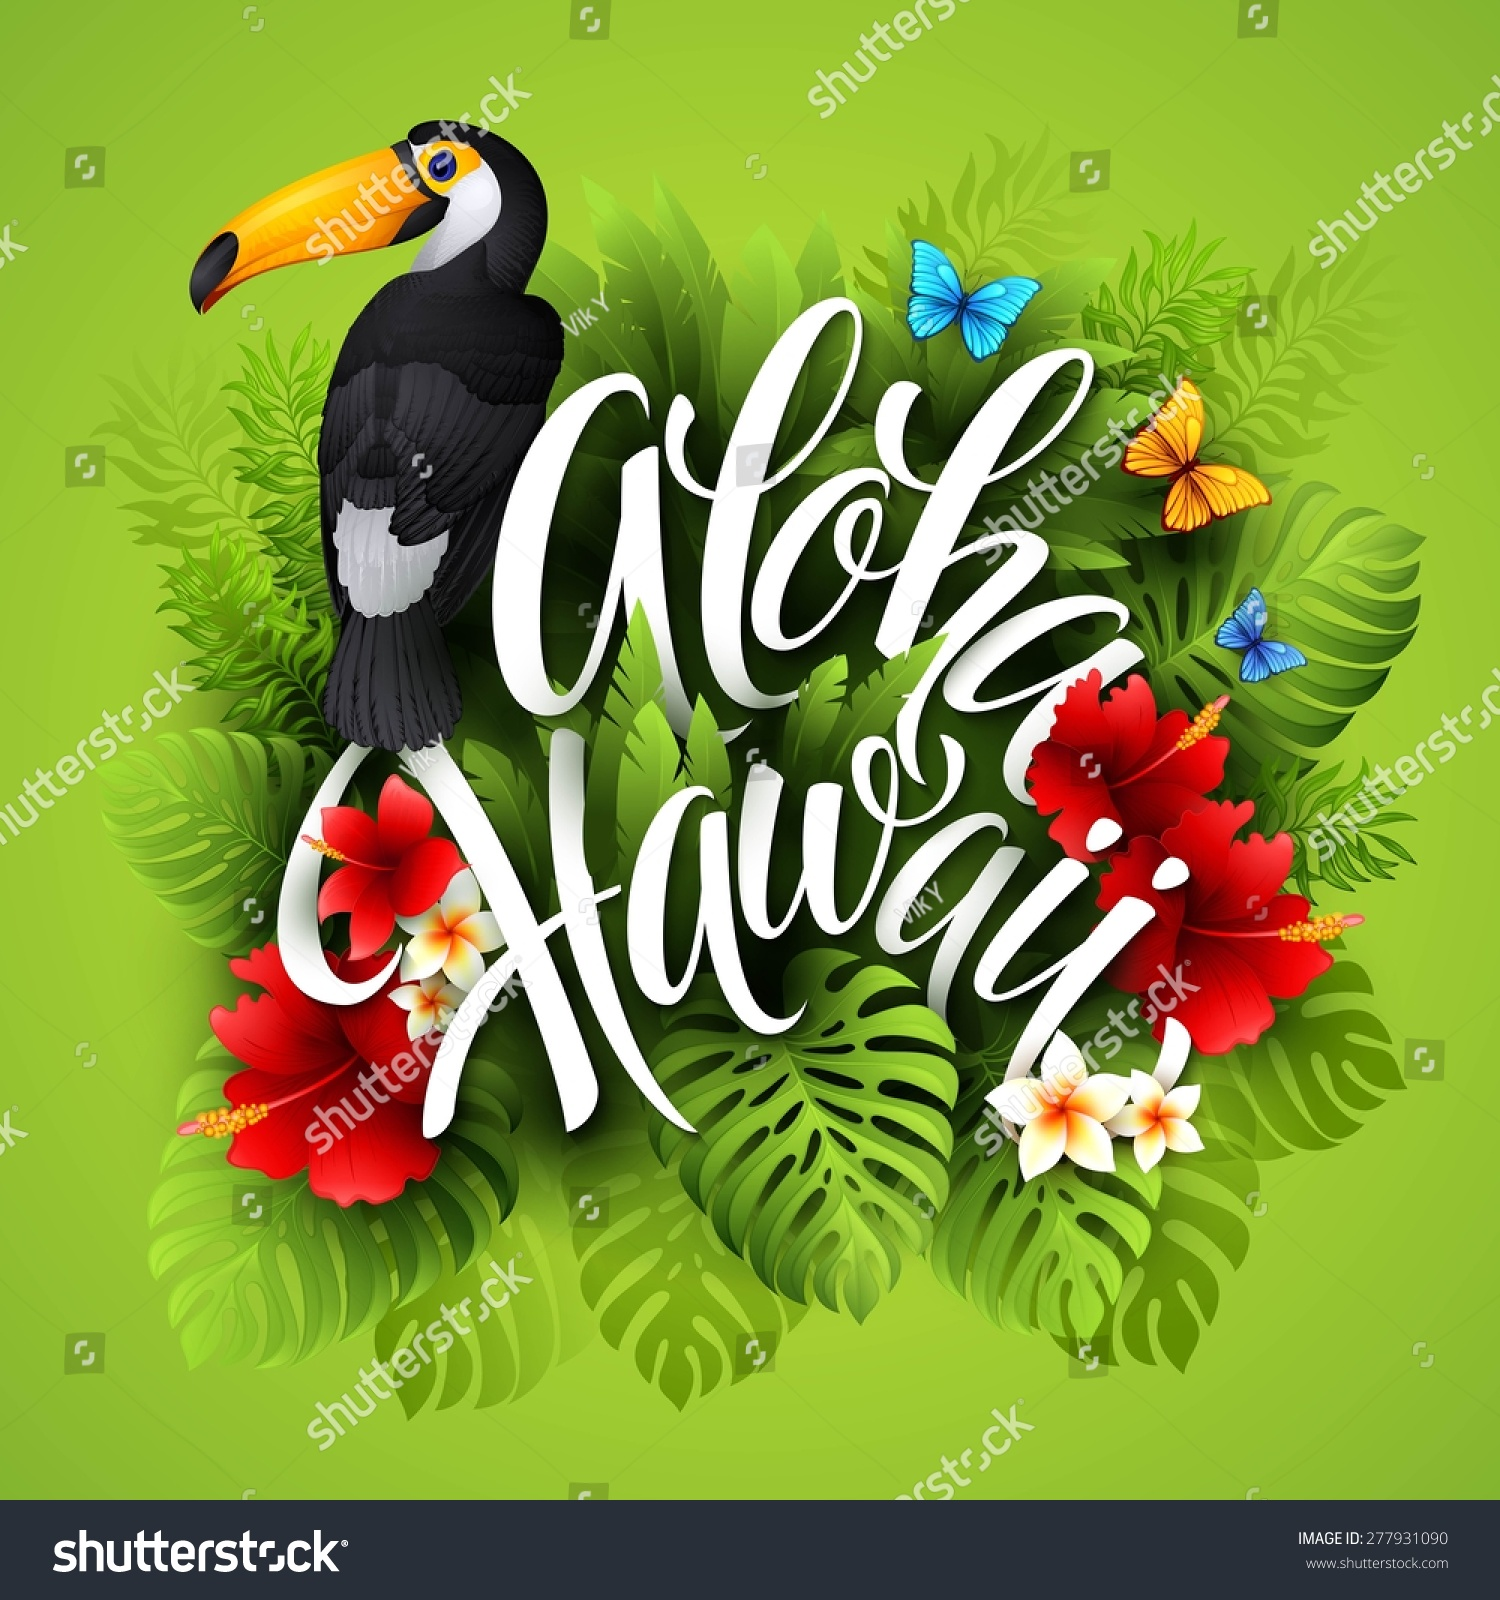 aloha black personals Hawaii personals the only 100% free  aloha i have a great work  black ,queen , strong,smart, beautiful ask me if you want to know.